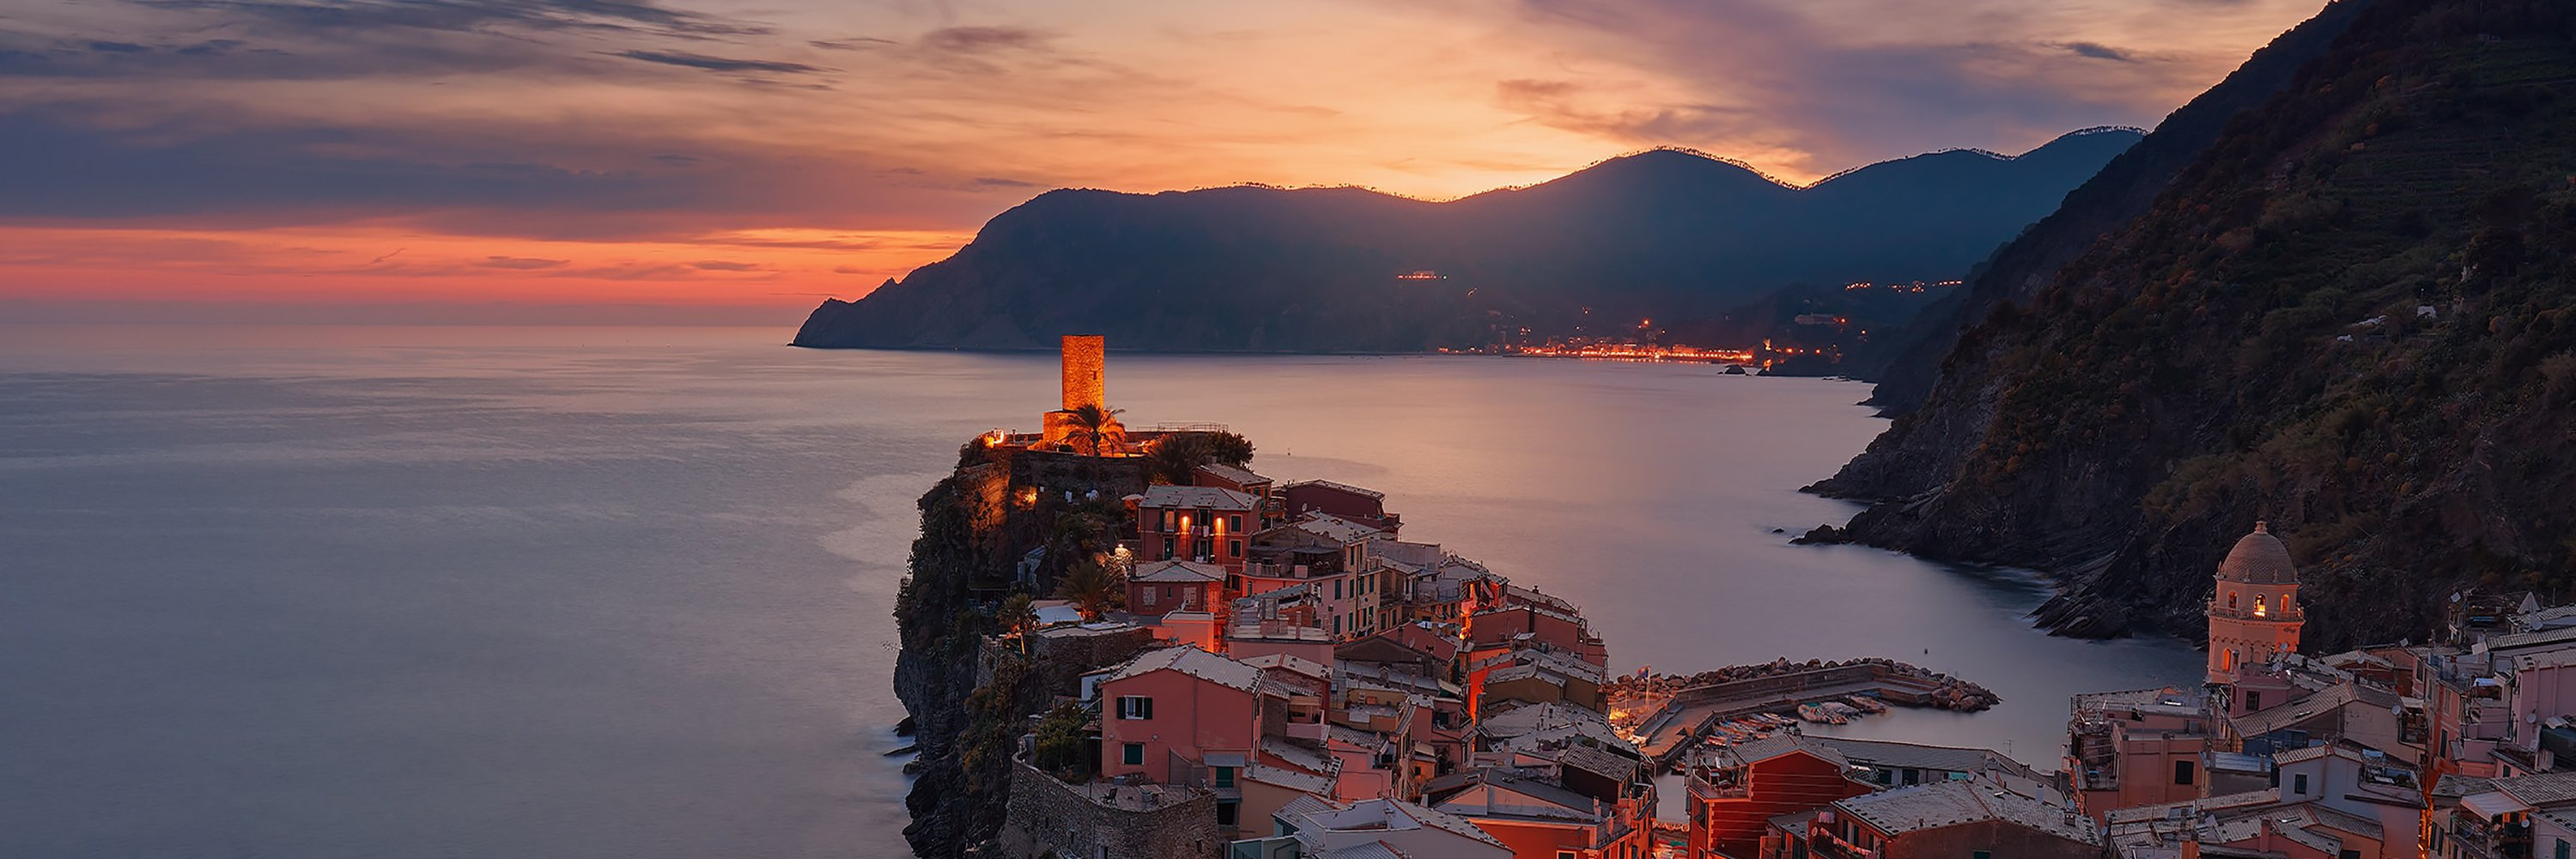 Sunset over Vernazza, Italy